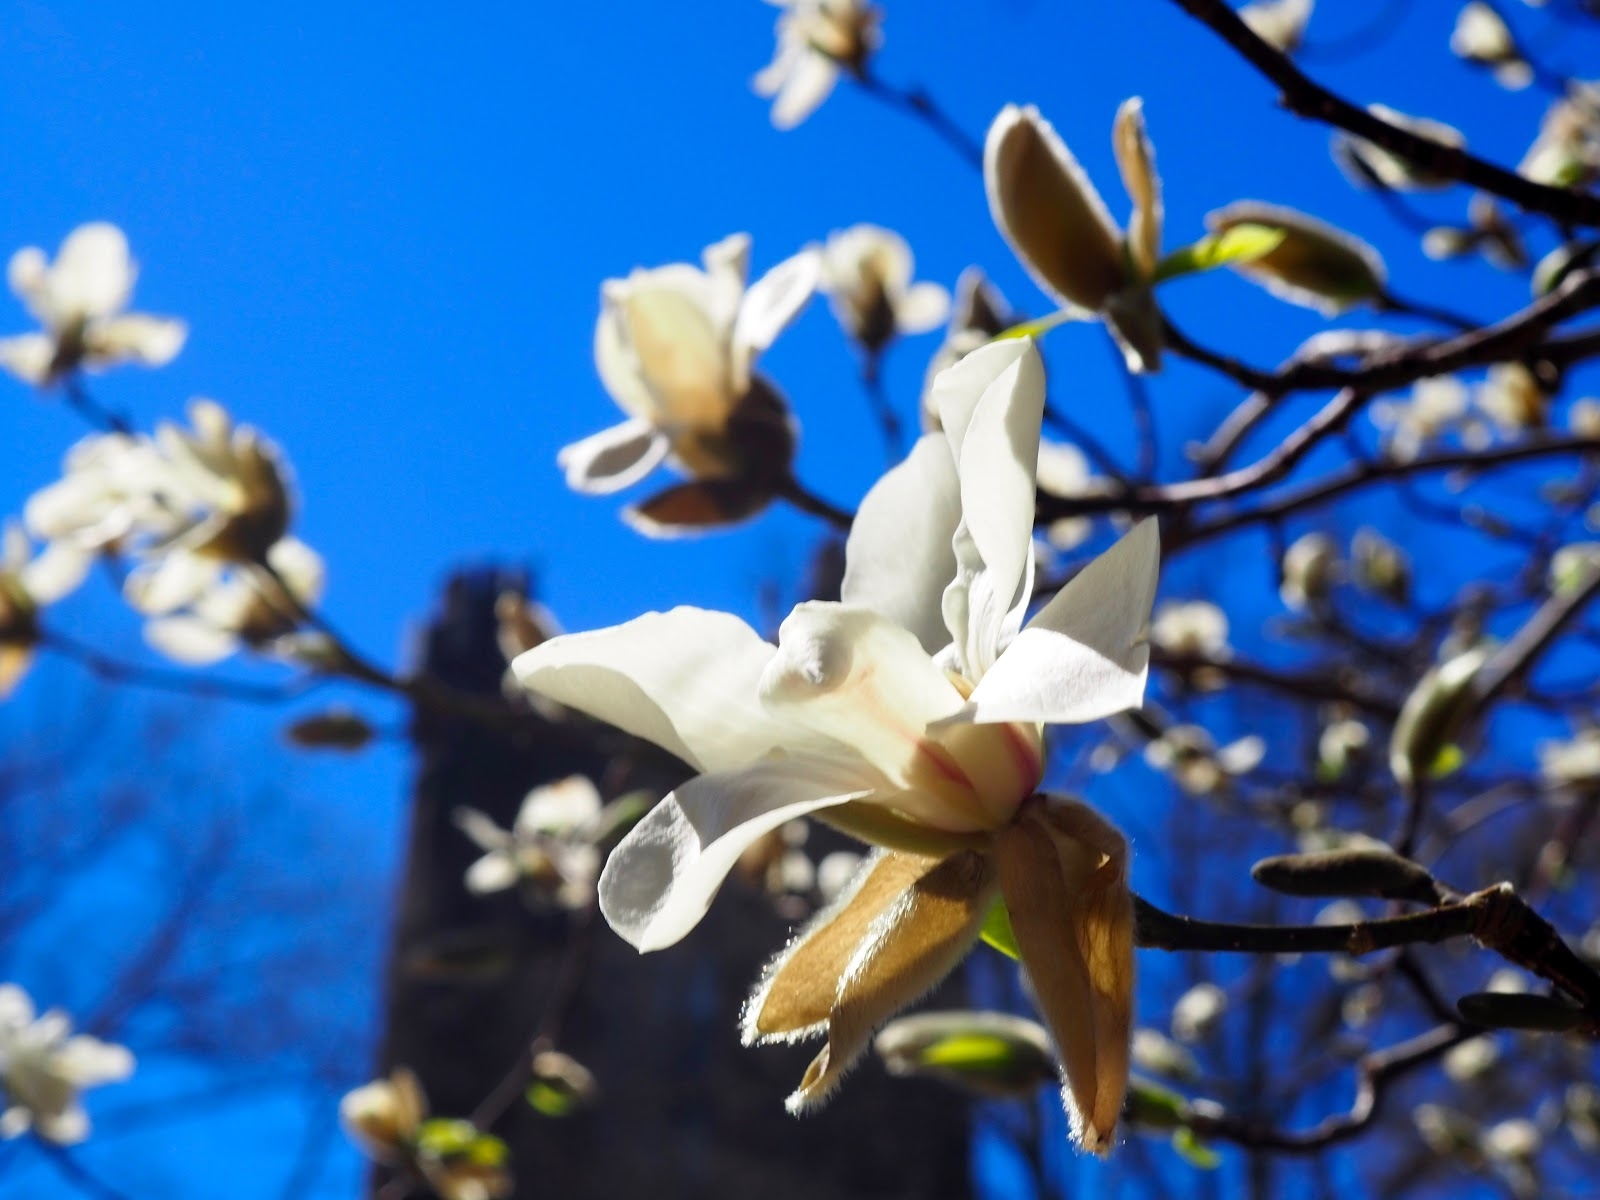 White flower just beginning to open in the spring at Mount Holyoke in South Hadley, MA.